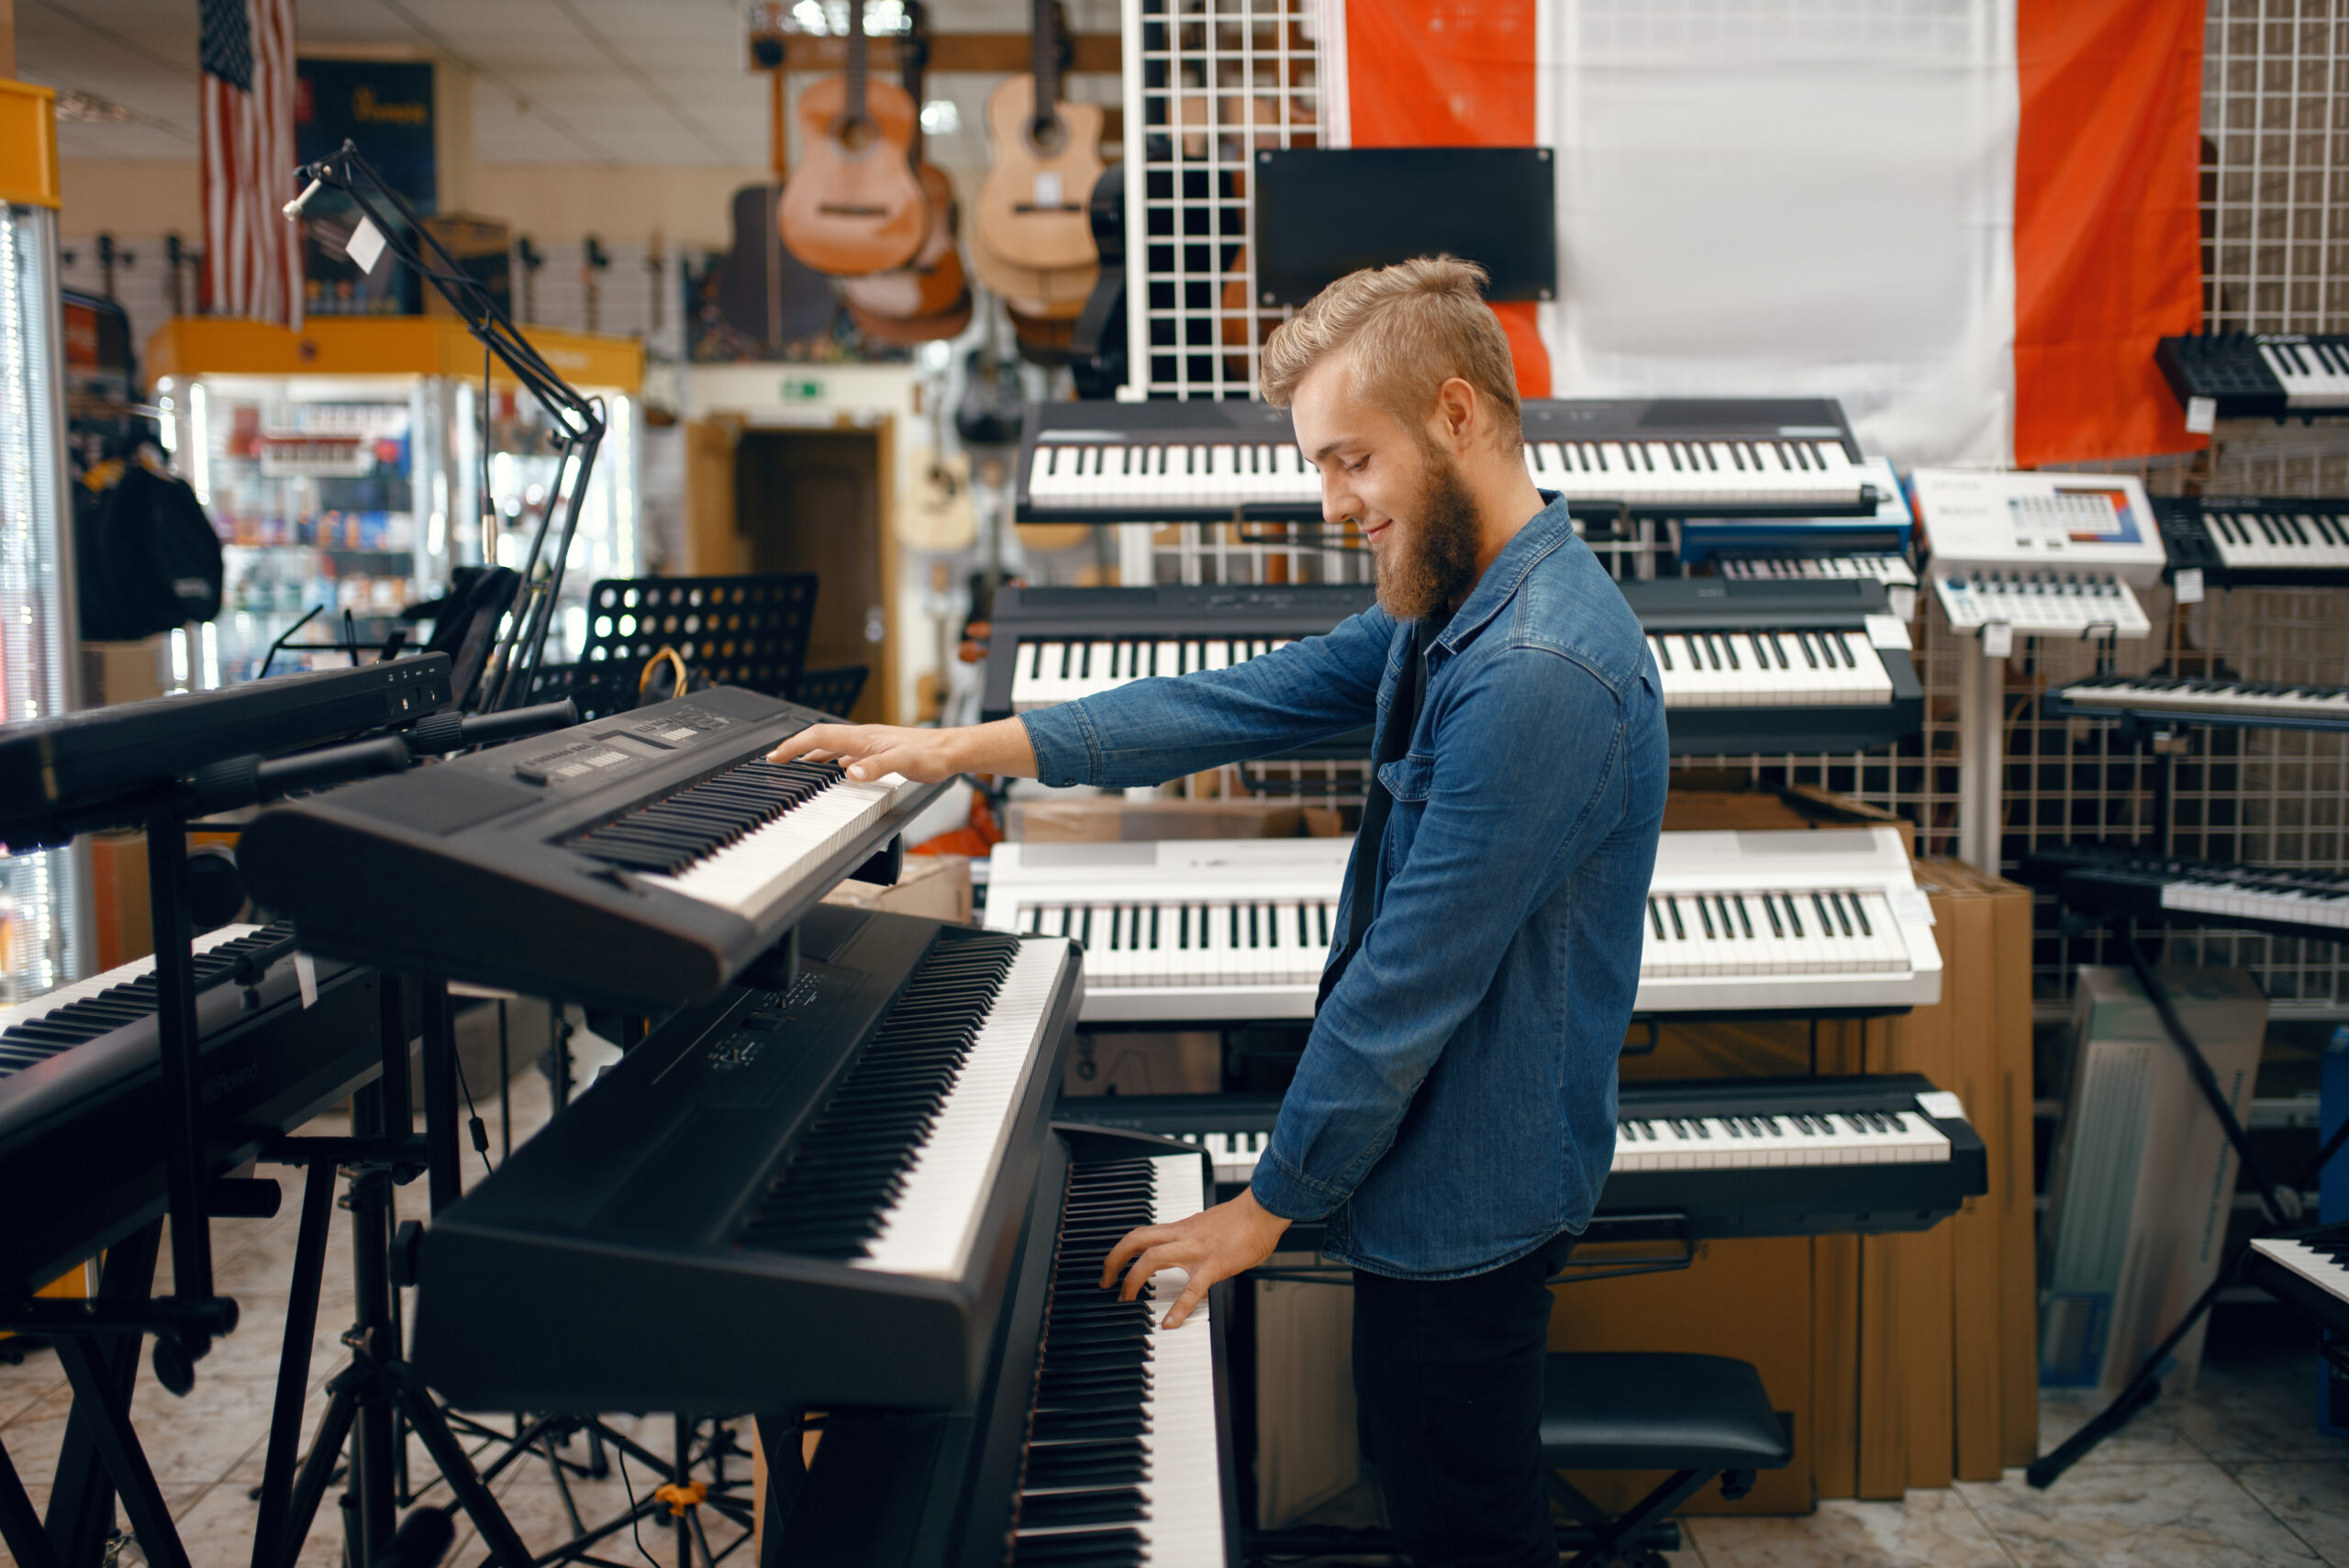 synth in music studio